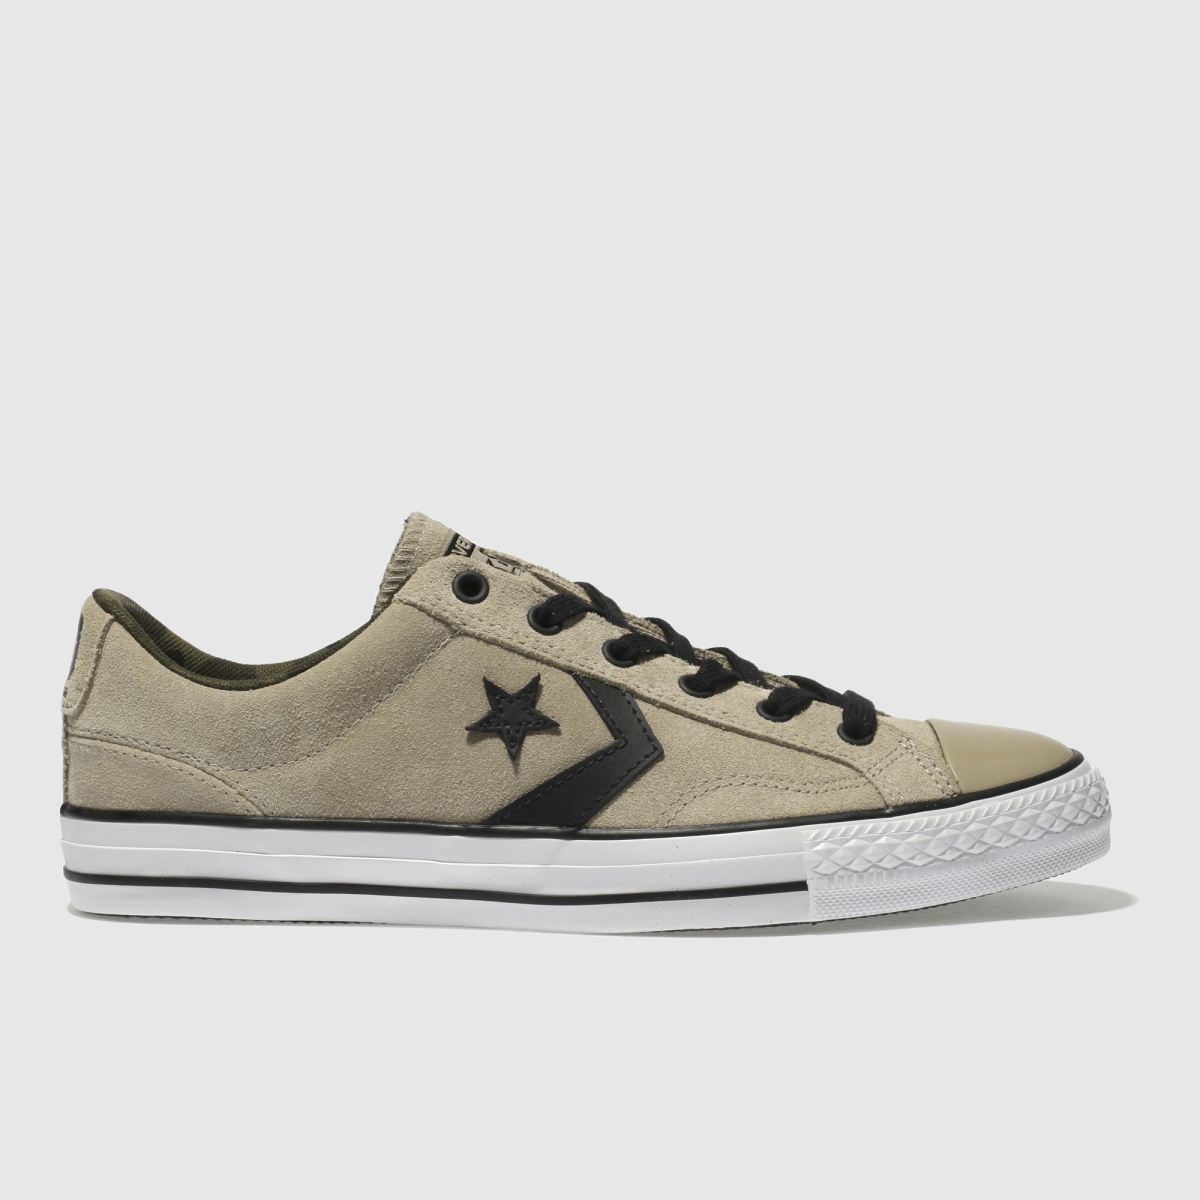 408e0b2ea8c4 ... closeout converse beige star player ox trainers 14955 b2bec